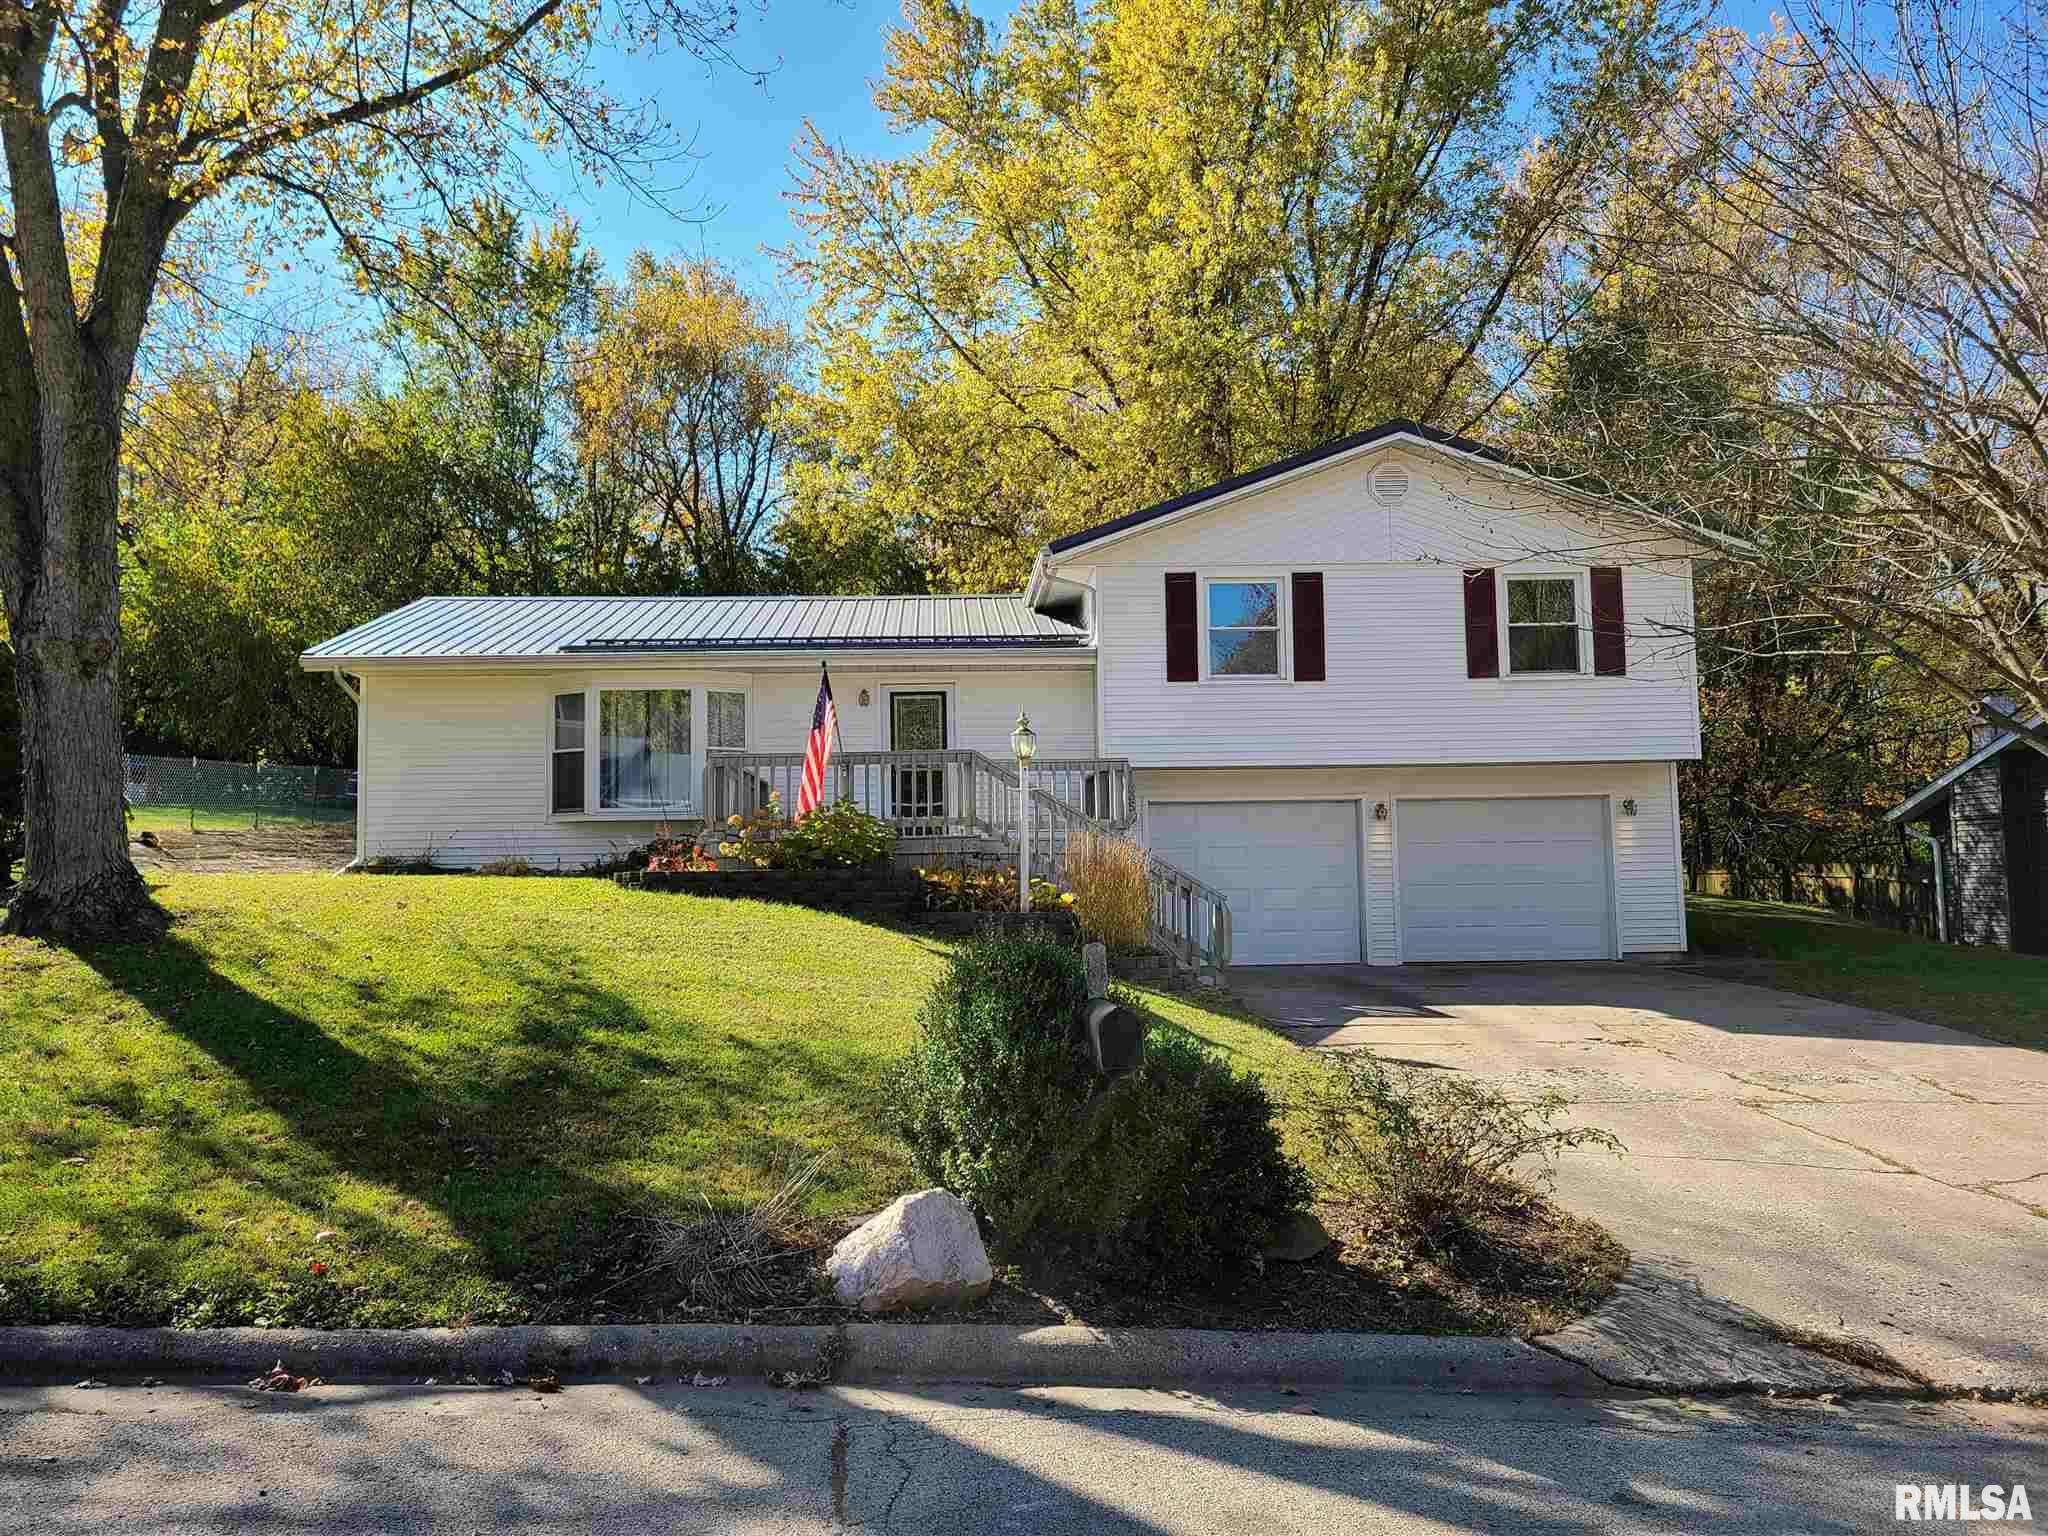 1435 E SYCAMORE Property Photo - Canton, IL real estate listing